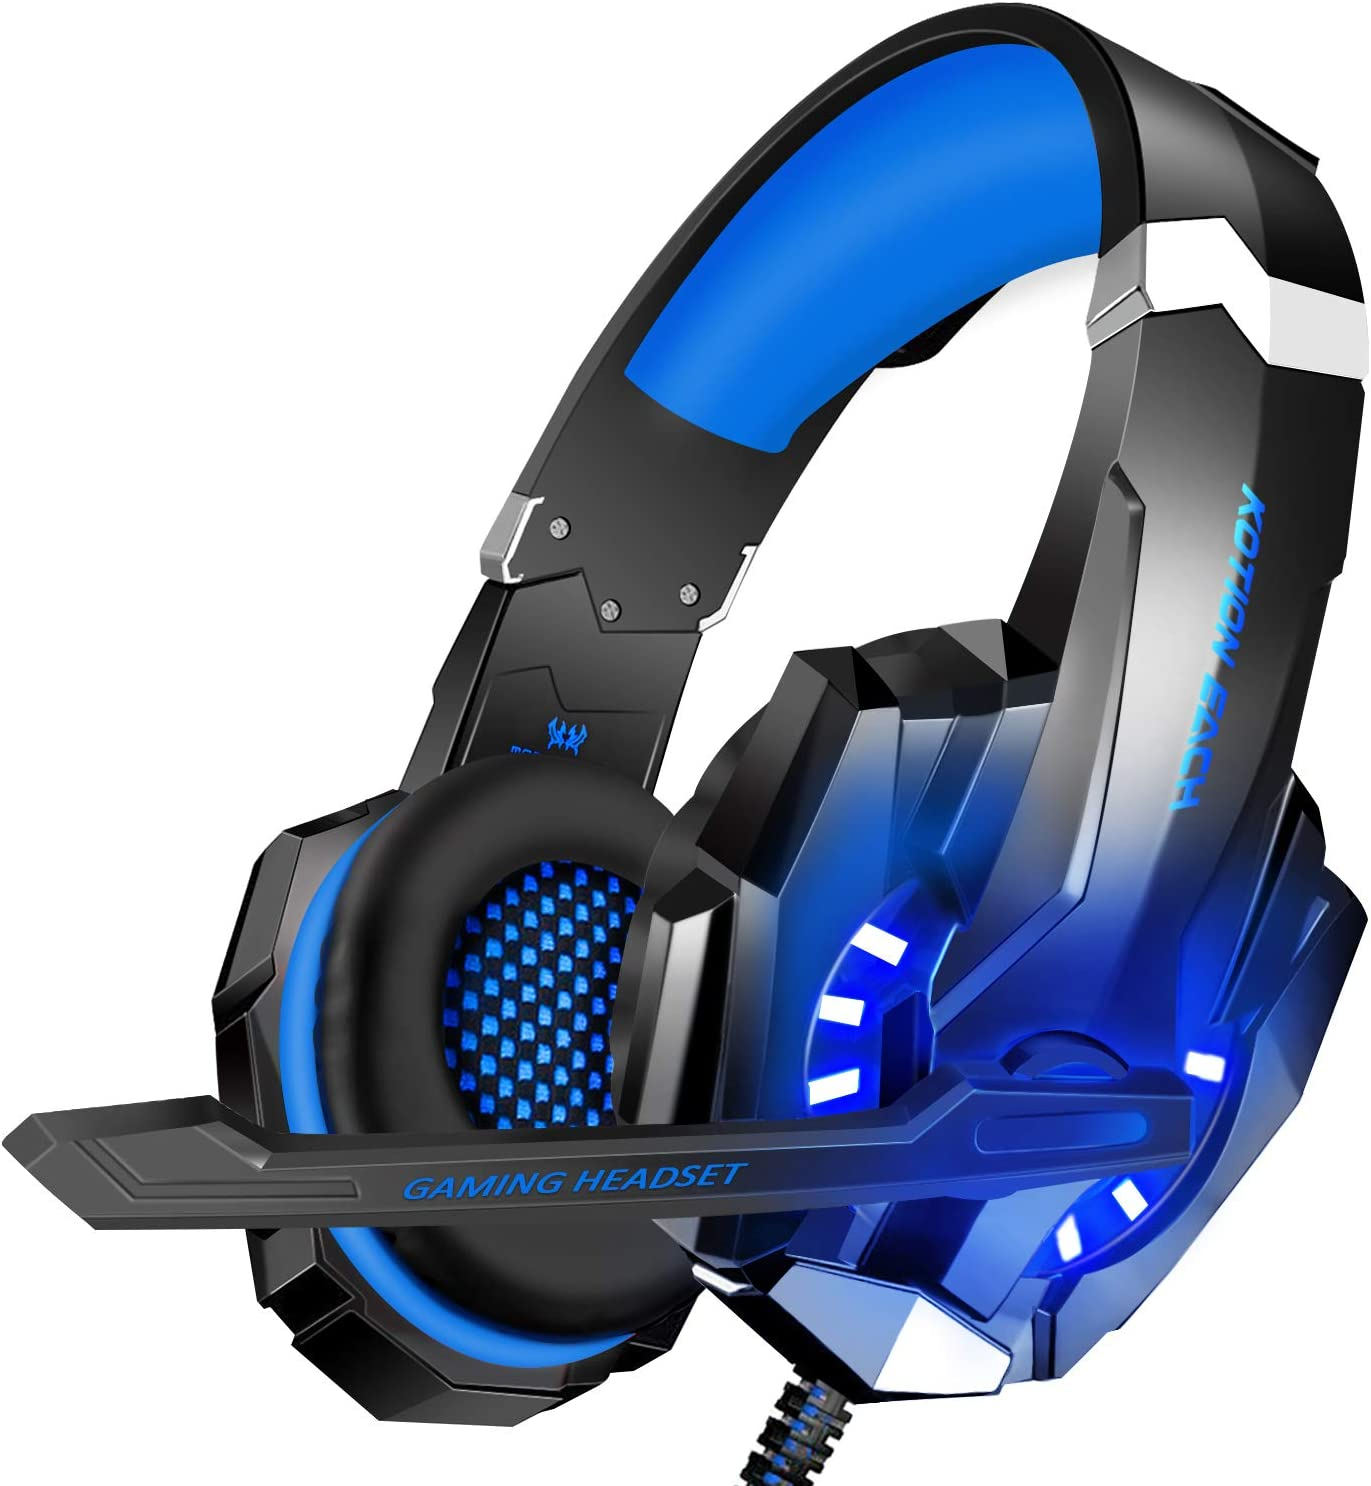 BLUEFIRE STEREO GAMING HEADSET FOR Nintendo switch The colour of This headphone is blue almost the gamer love this types of headset if you are love headset so this one is the best headset for he nintendo switch fortnite